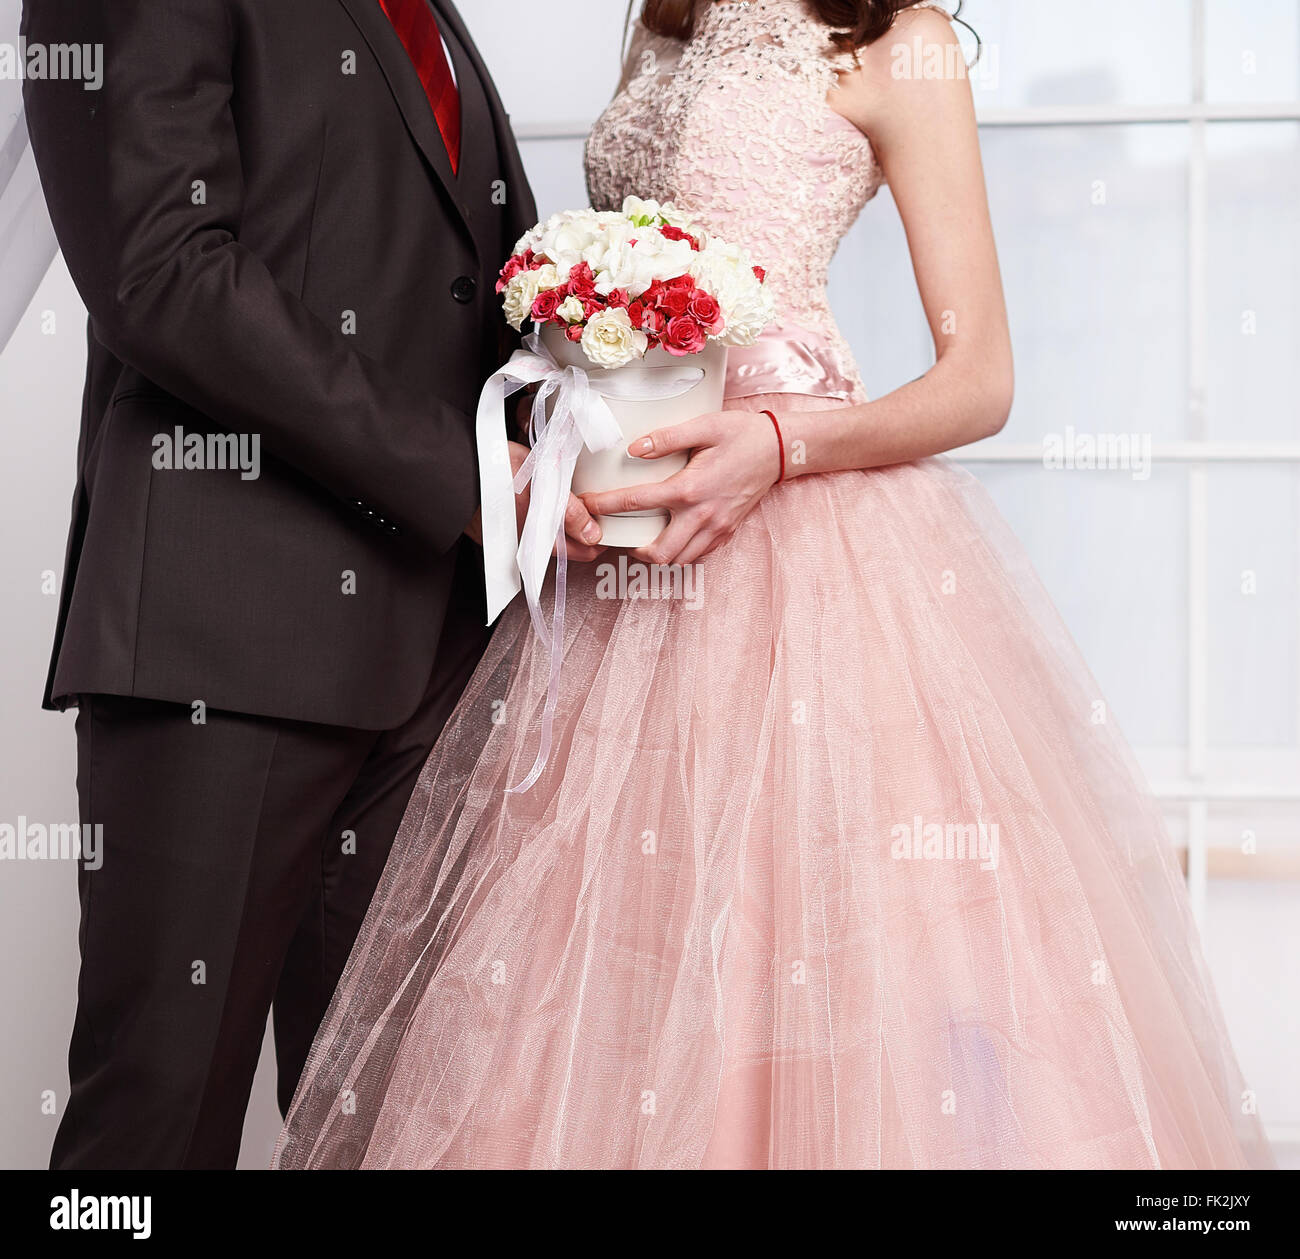 bride and groom - Stock Image